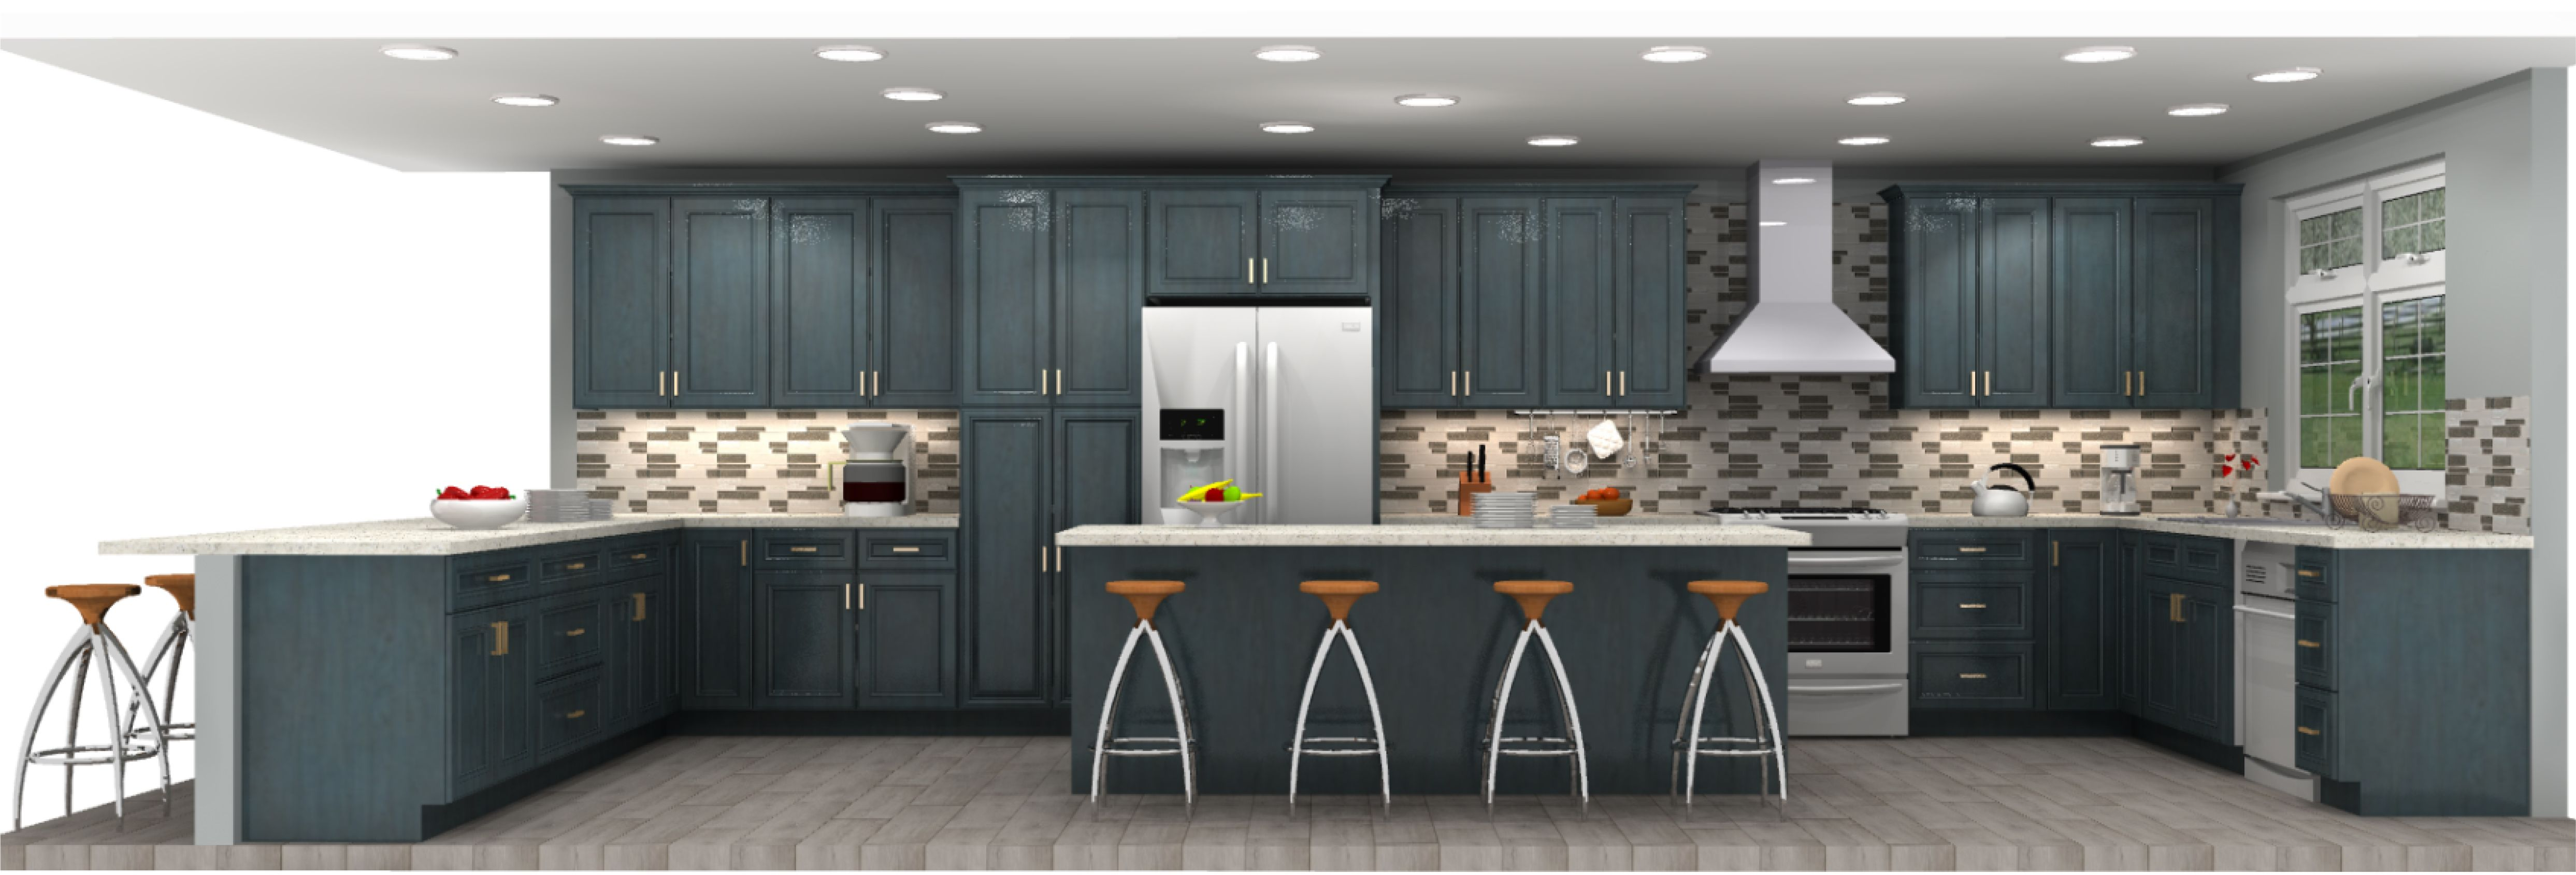 get a free 3d kitchen design today with lily ann cabinets